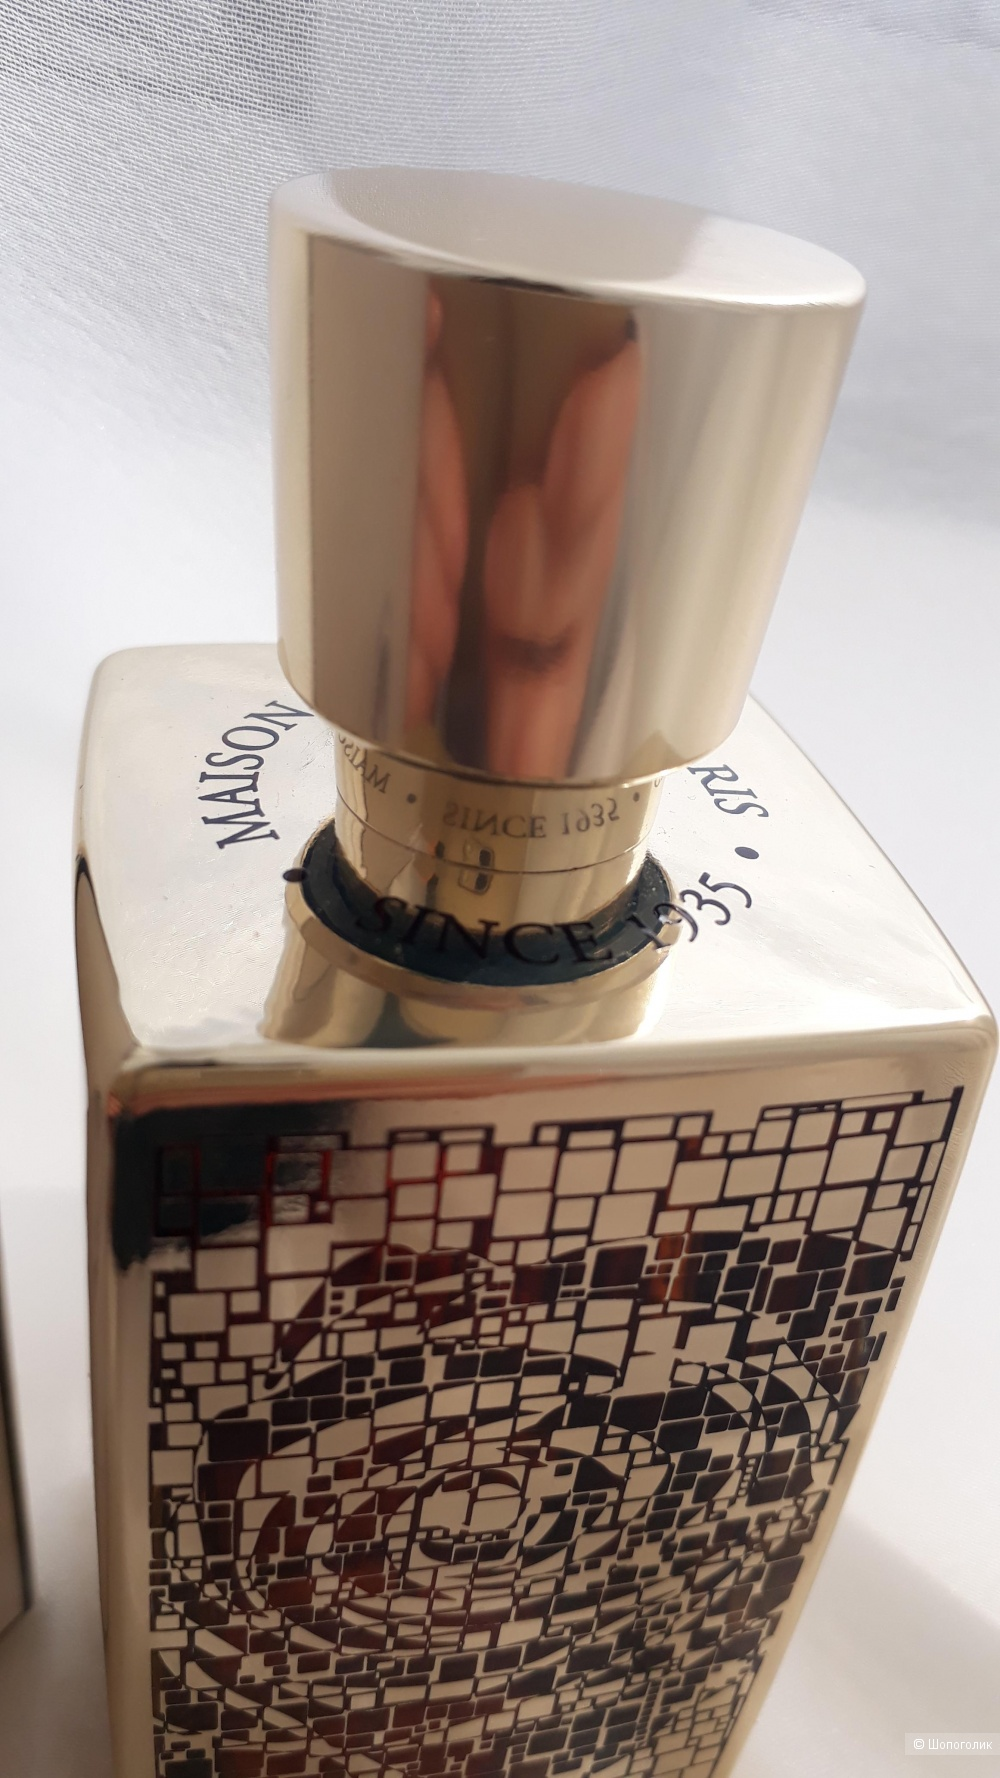 Oud bouquet Lancome edp 75 ml